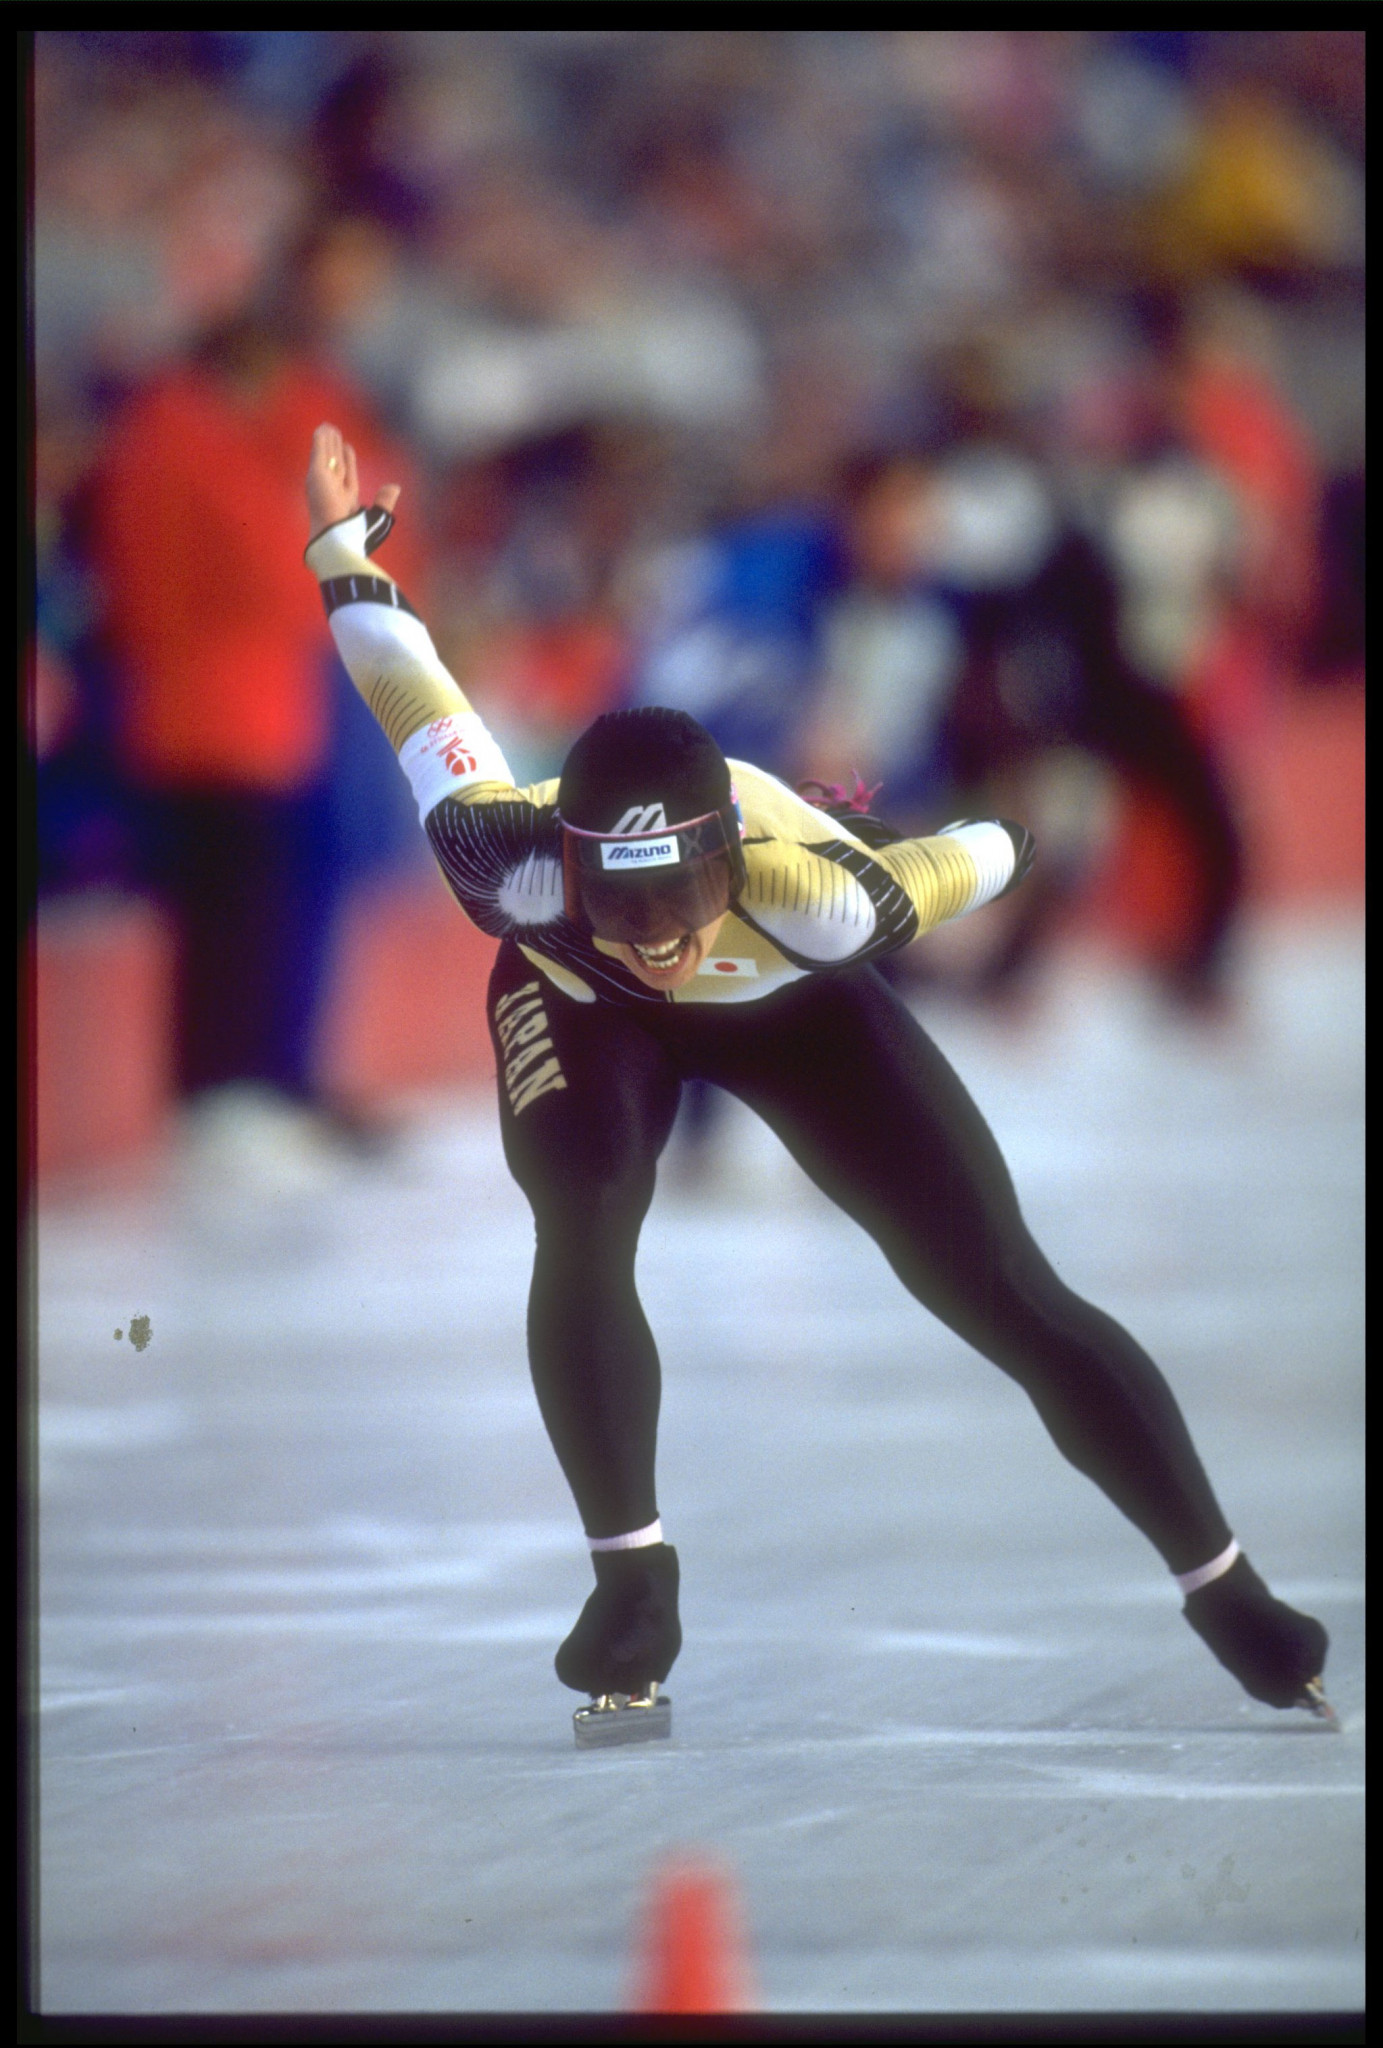 Seiko Hashimoto won Olympic bronze in Albertville in 1992 ©Getty Images